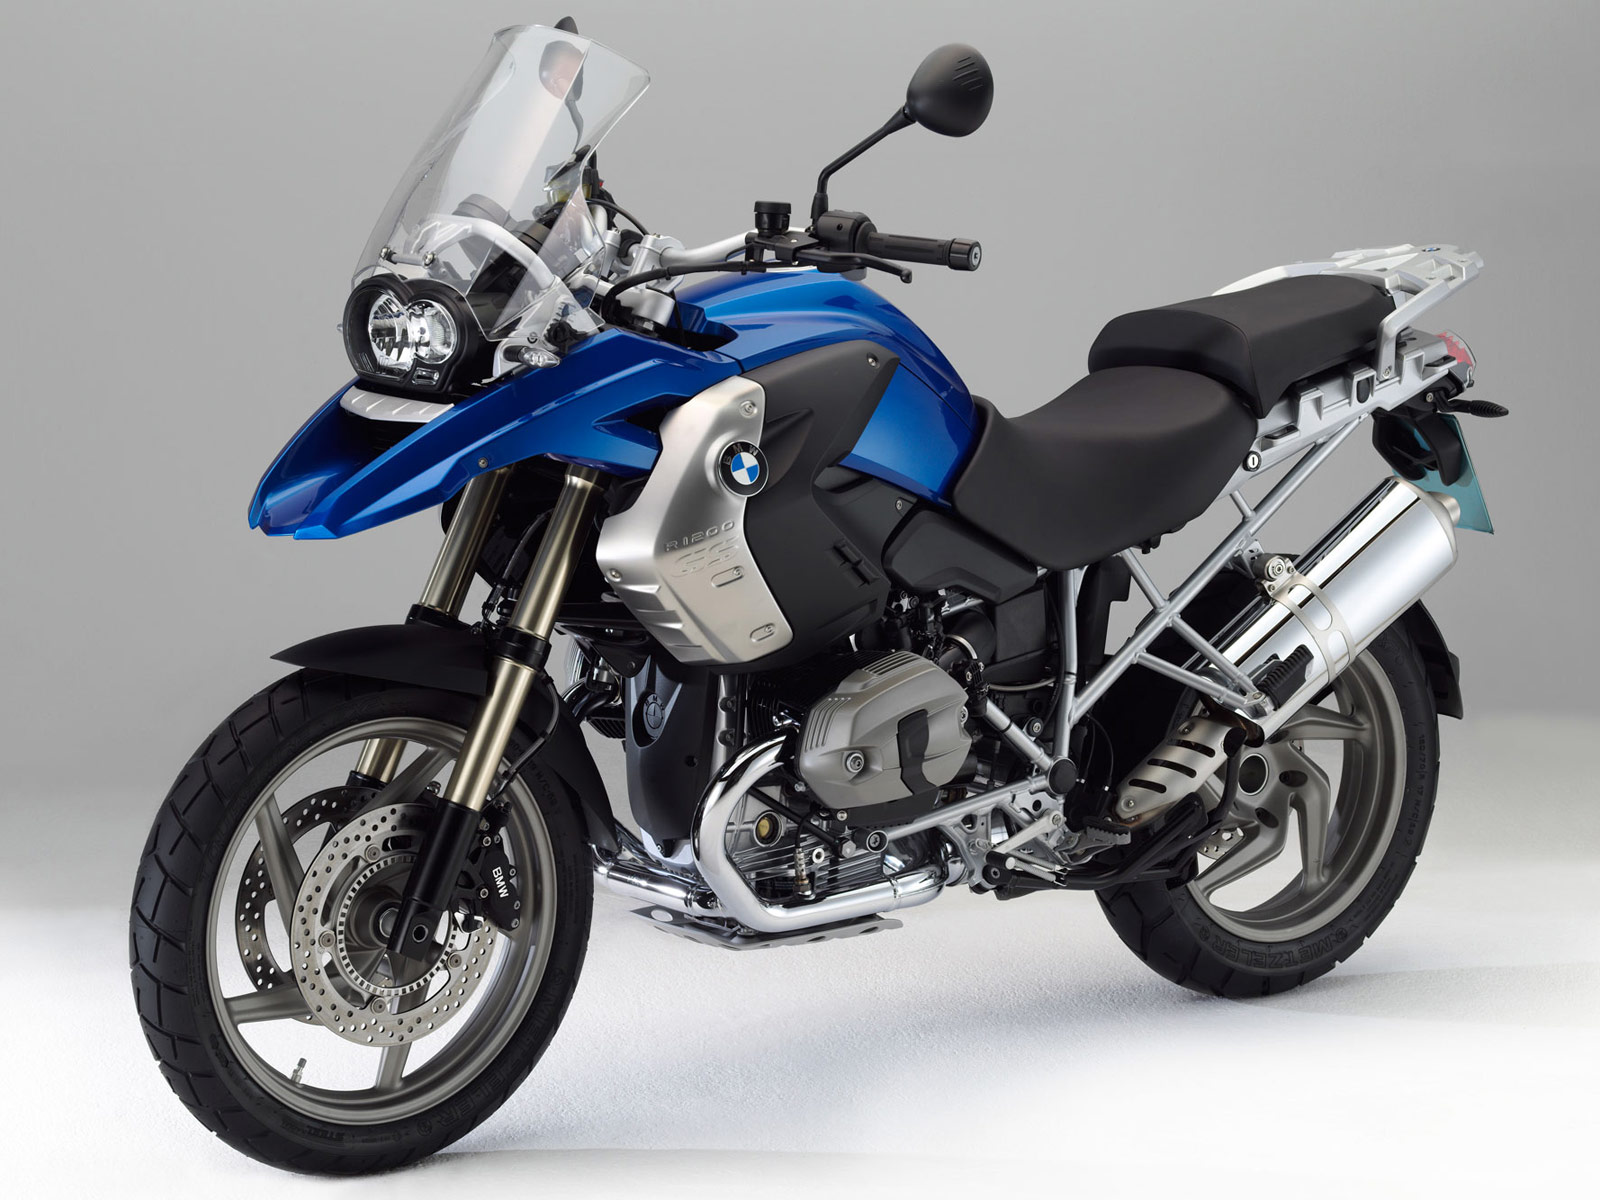 2012 bmw r1200gs motorcycle insurance information. Black Bedroom Furniture Sets. Home Design Ideas